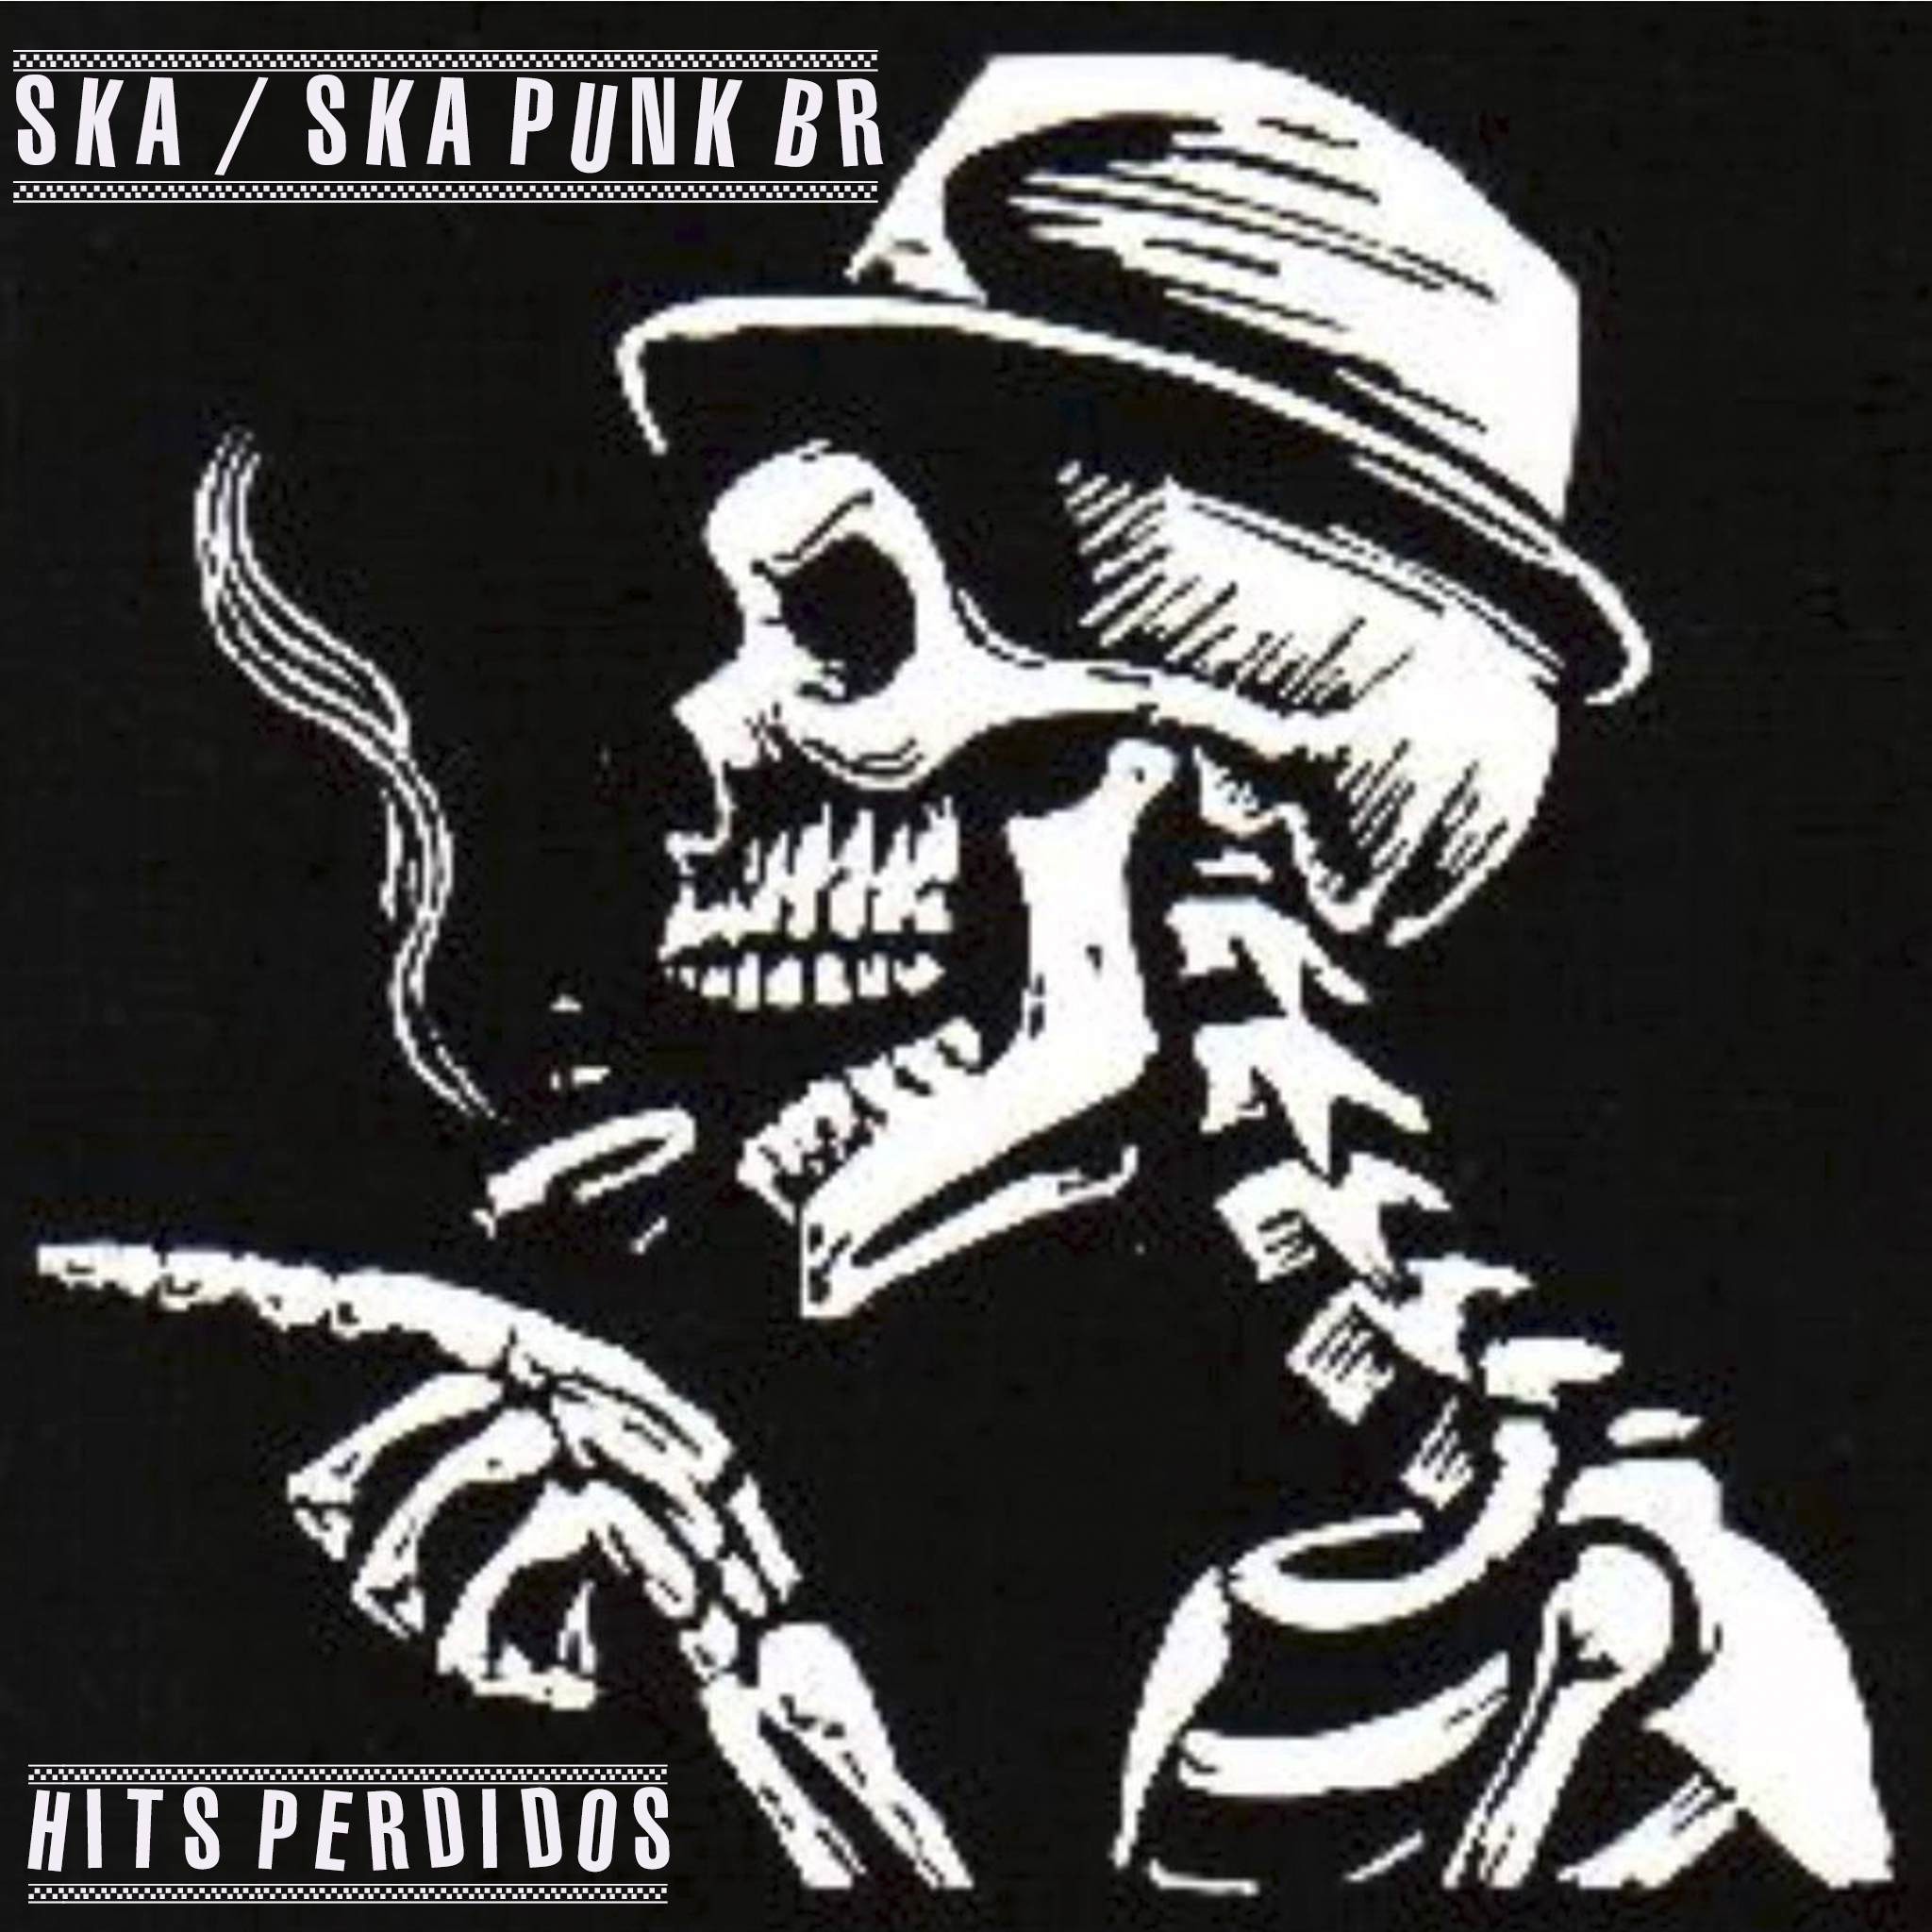 Playlist SkaSkapunk